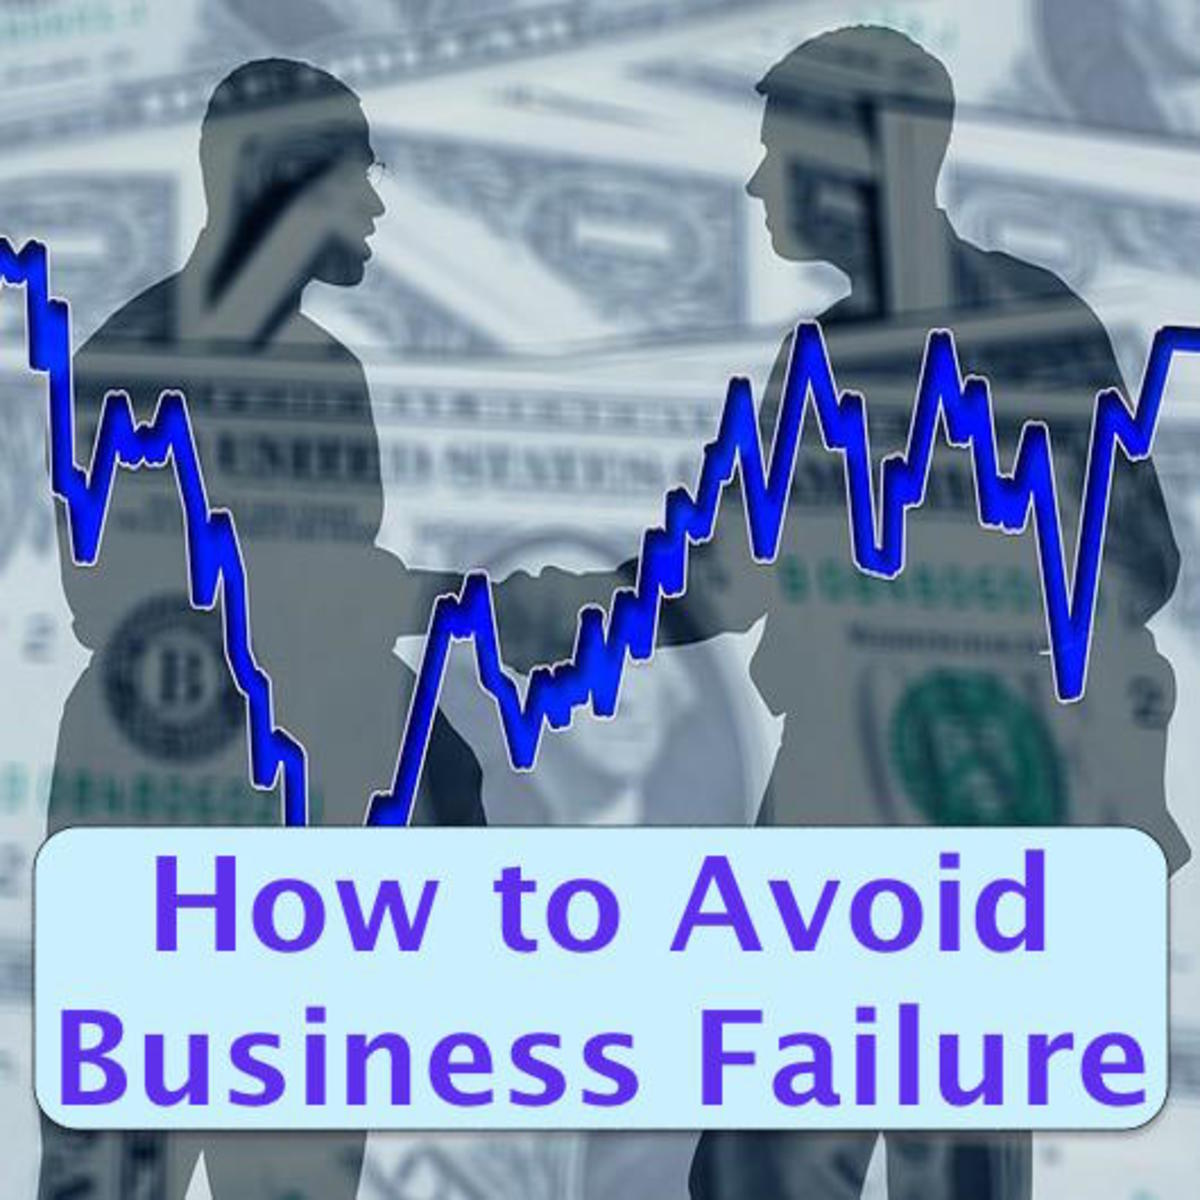 How to Prevent Failure of a Small Business (Things I've Learned)